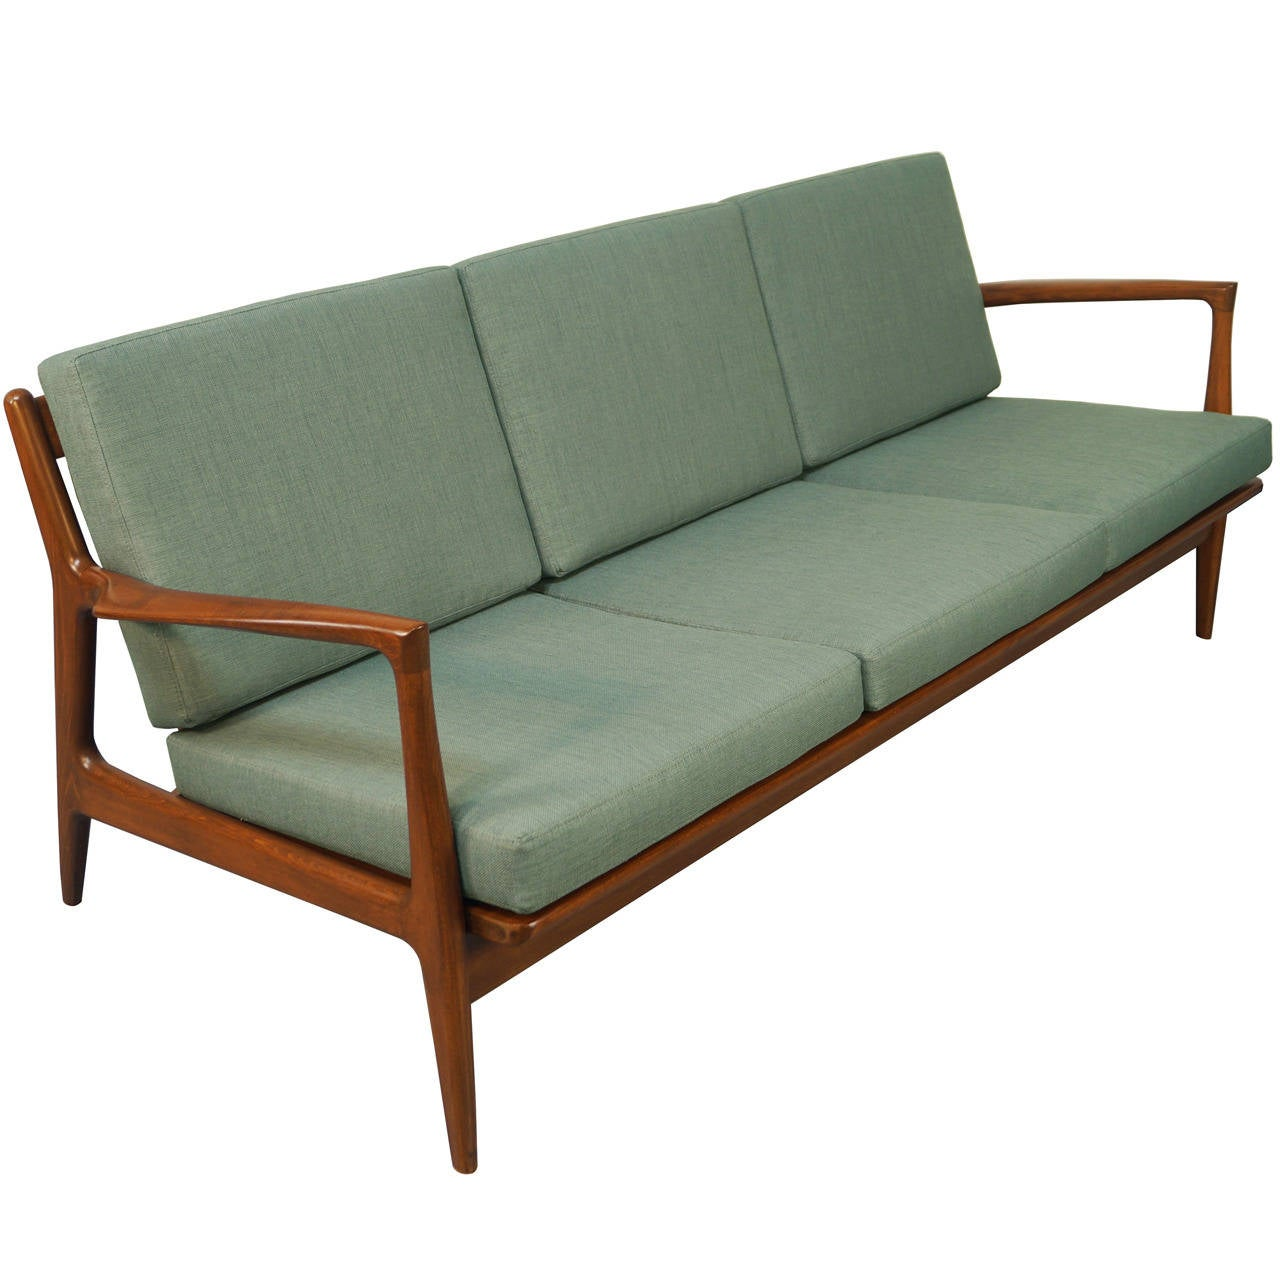 Danish modern sofas catchy mid century modern sleeper sofa for Modern furniture sofa